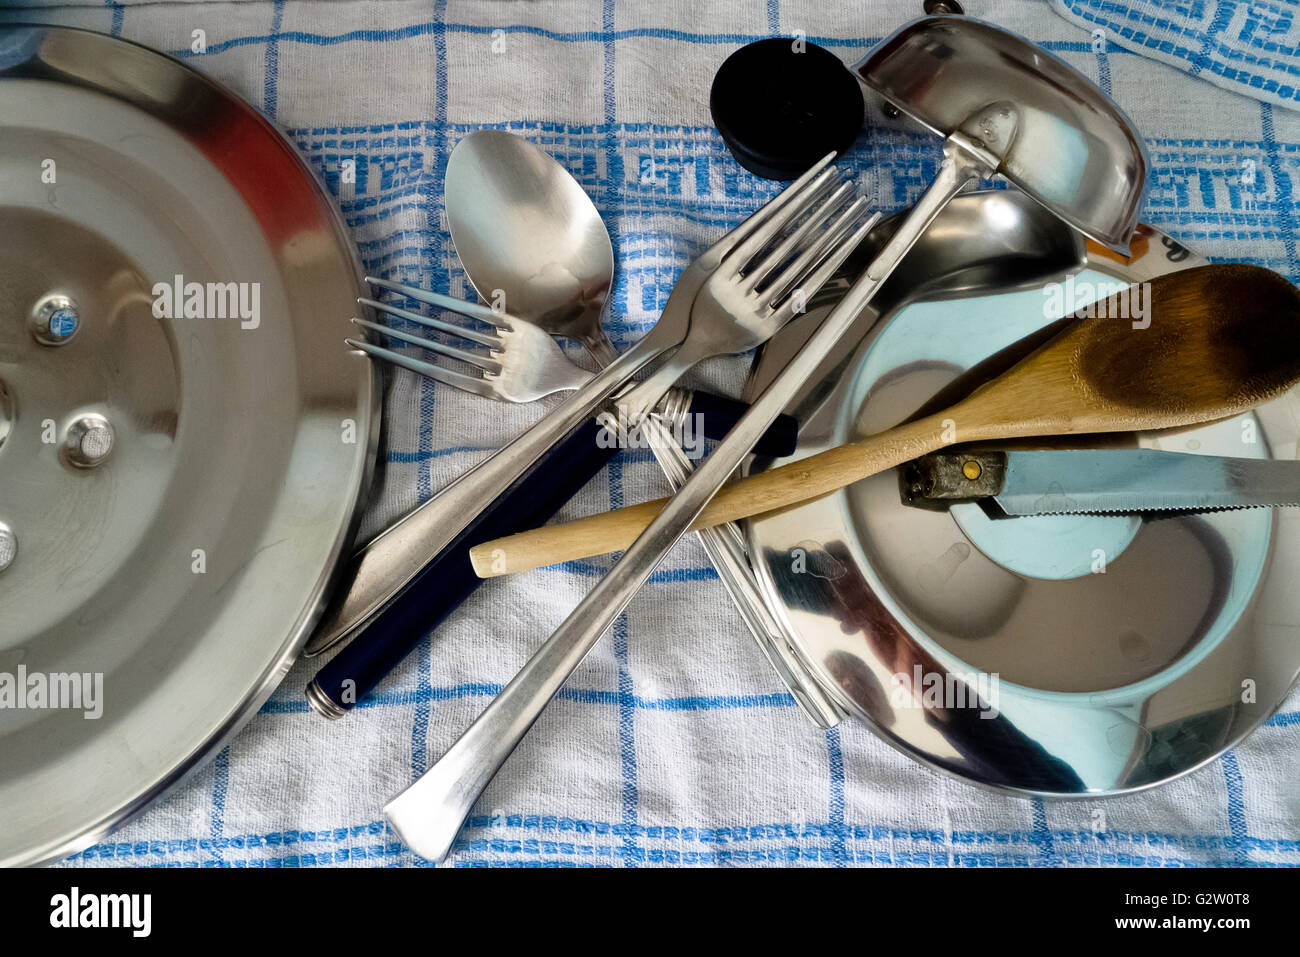 Household  objects on a cloth. - Stock Image